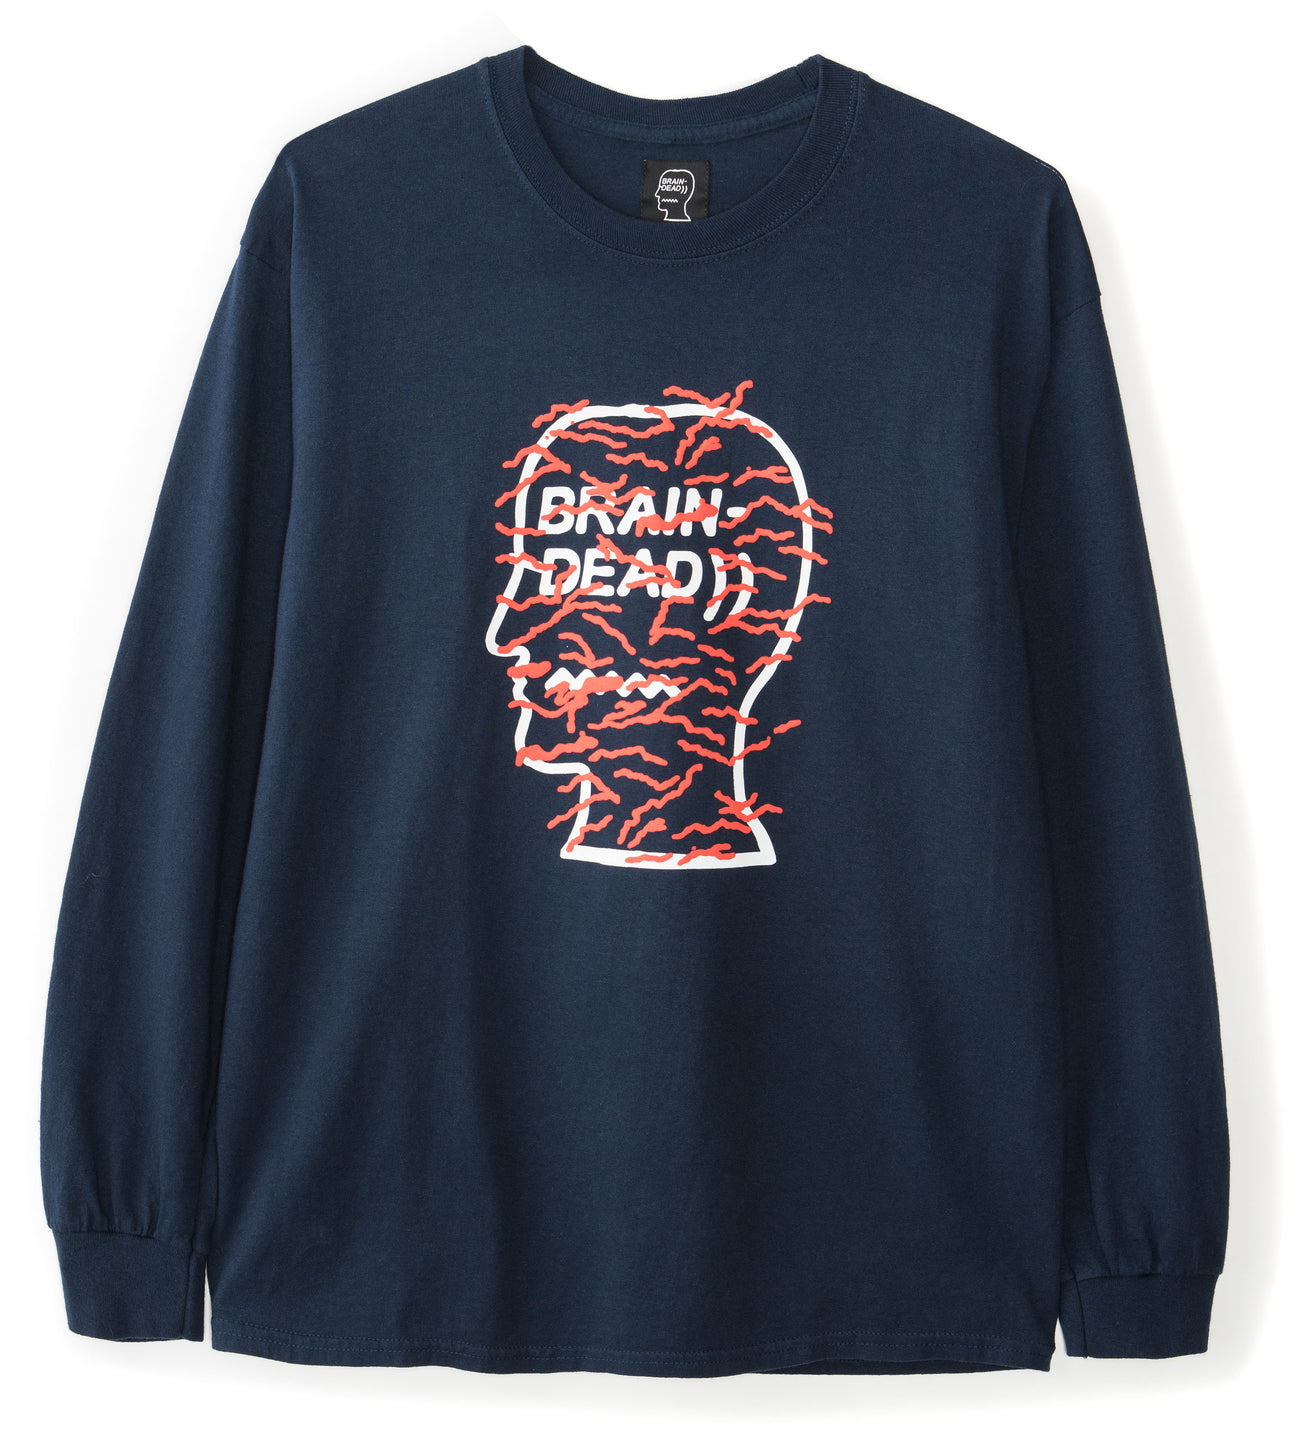 Infected Longsleeve - Navy